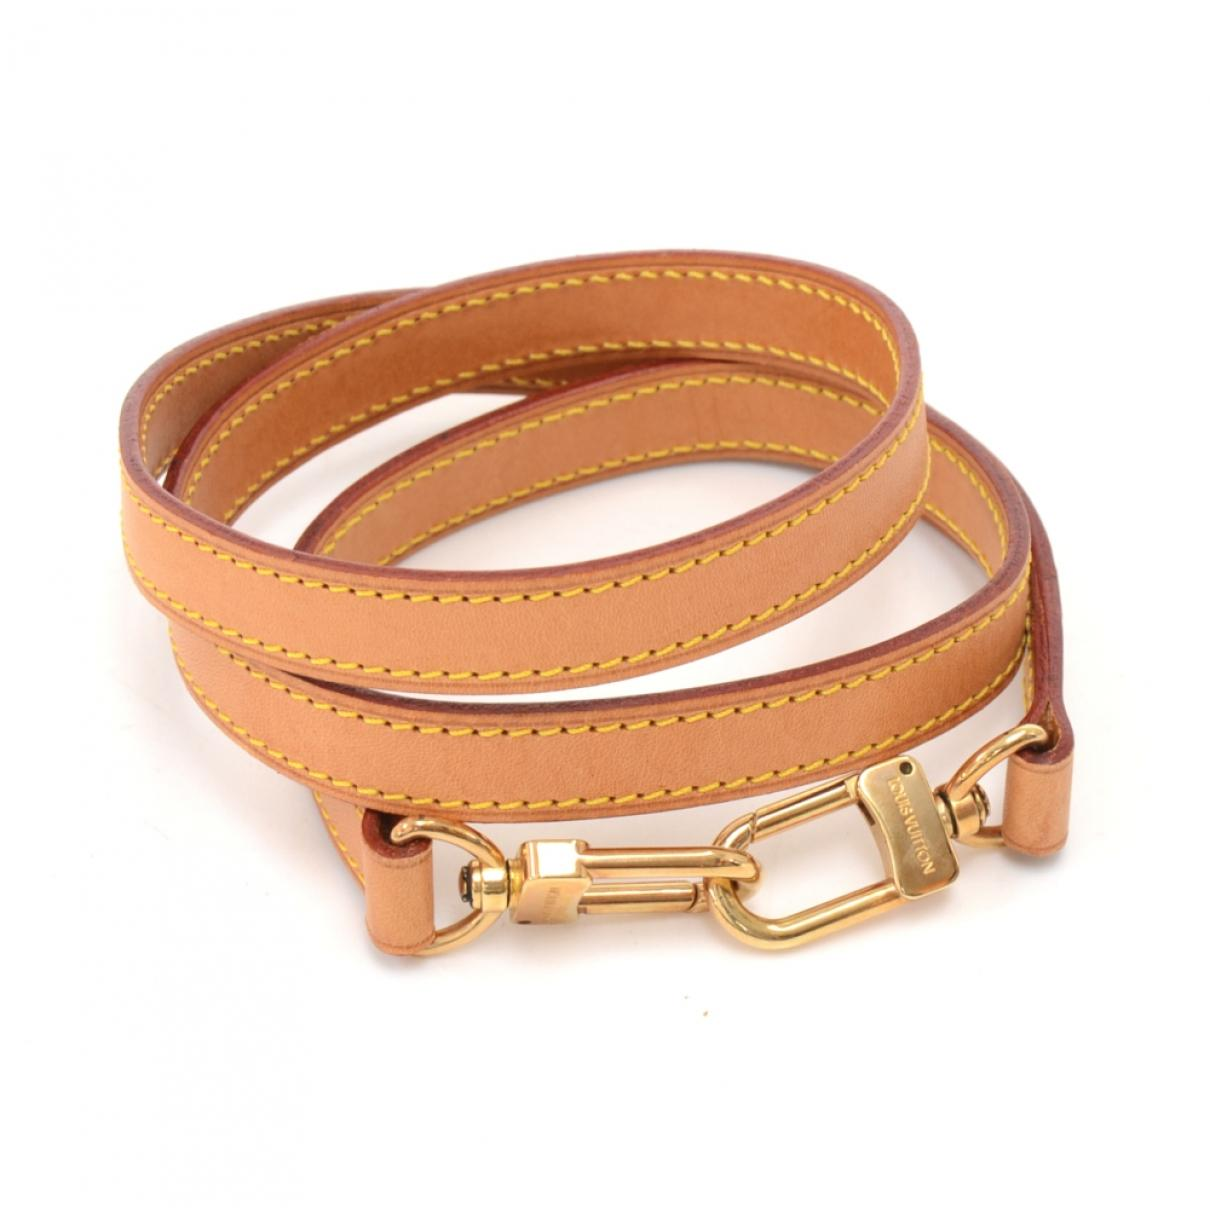 d006faf64357 Lyst - Louis Vuitton Beige Leather Bag Charms in Natural